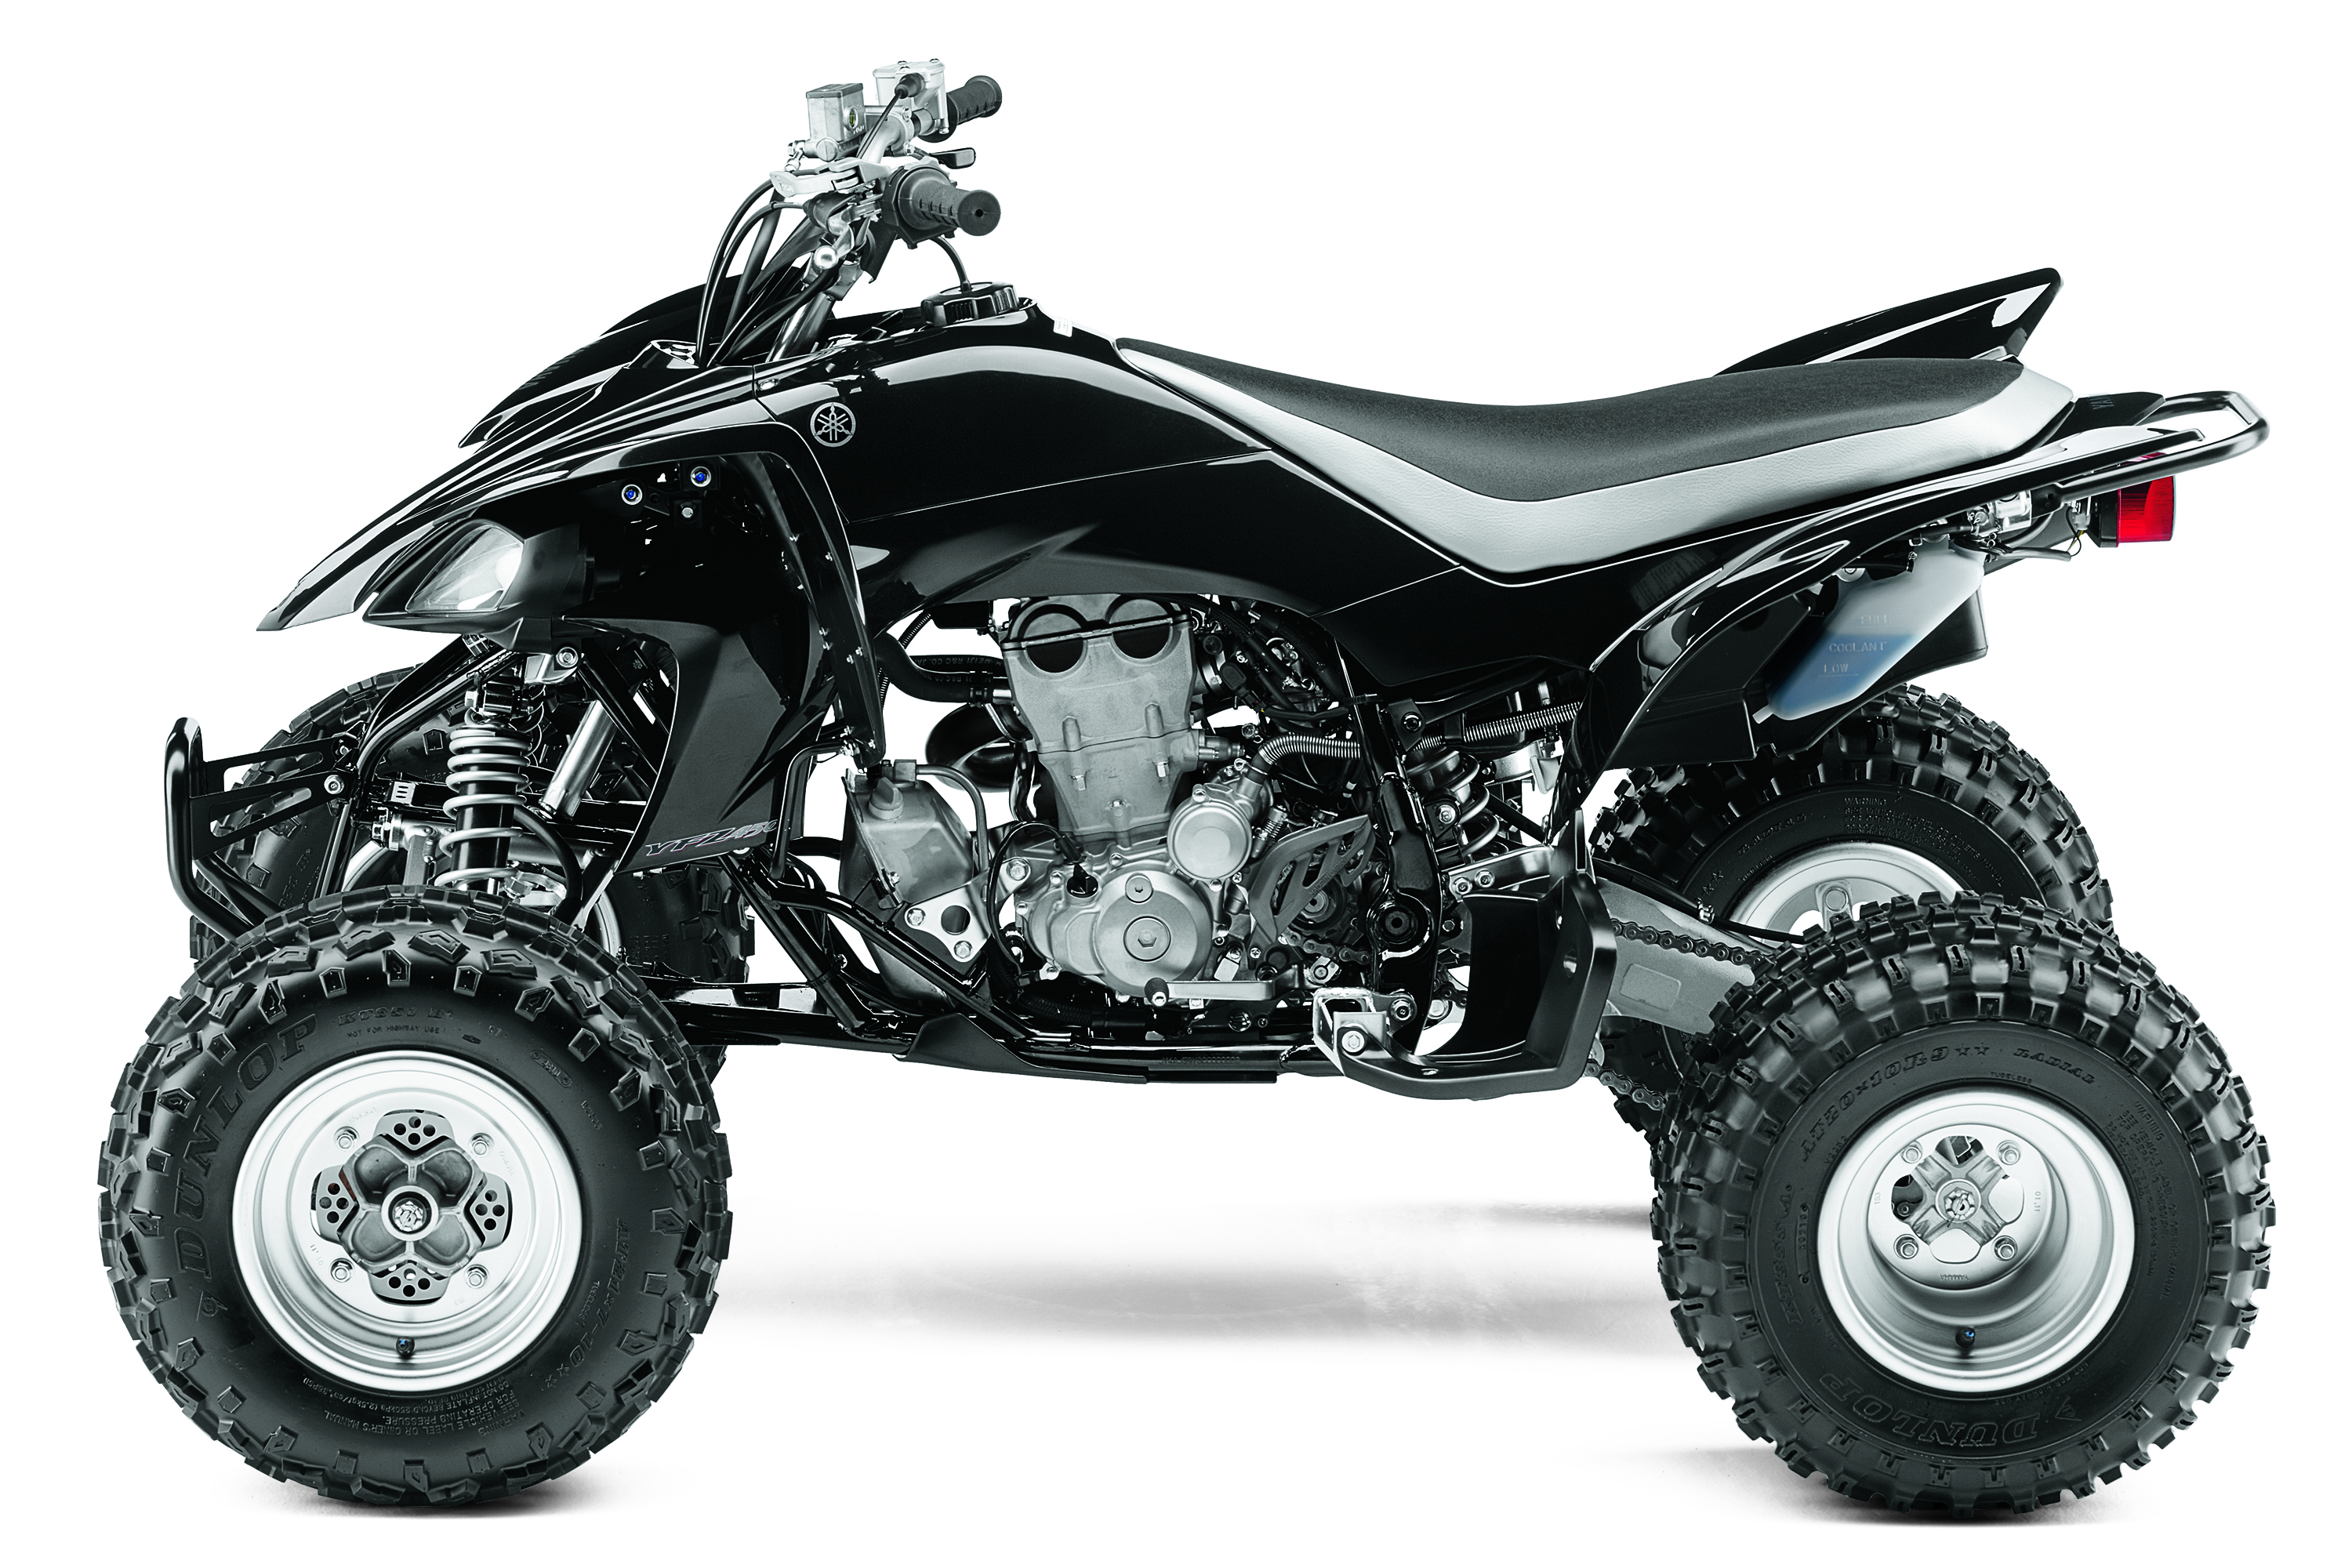 2012 yamaha yfz 450 top speed